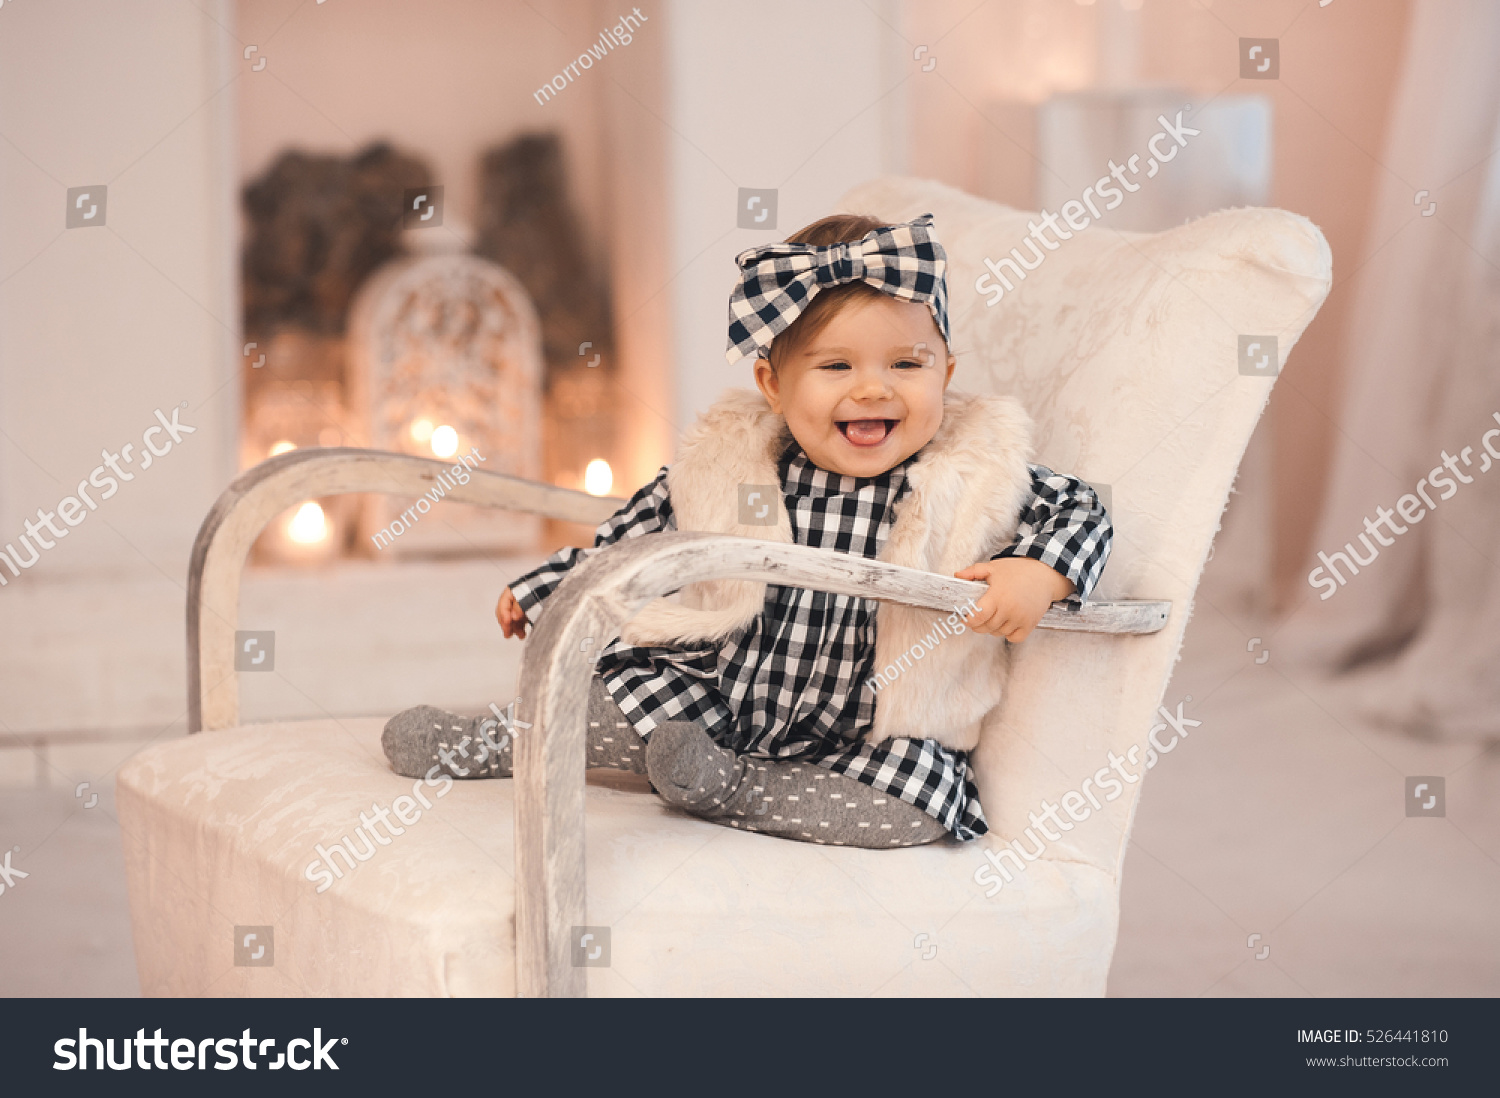 Black child sitting in chair - Smiling Baby Girl Under 1 Year Old Wearing Stylish Clothes Sitting In Vintage Chair Over White